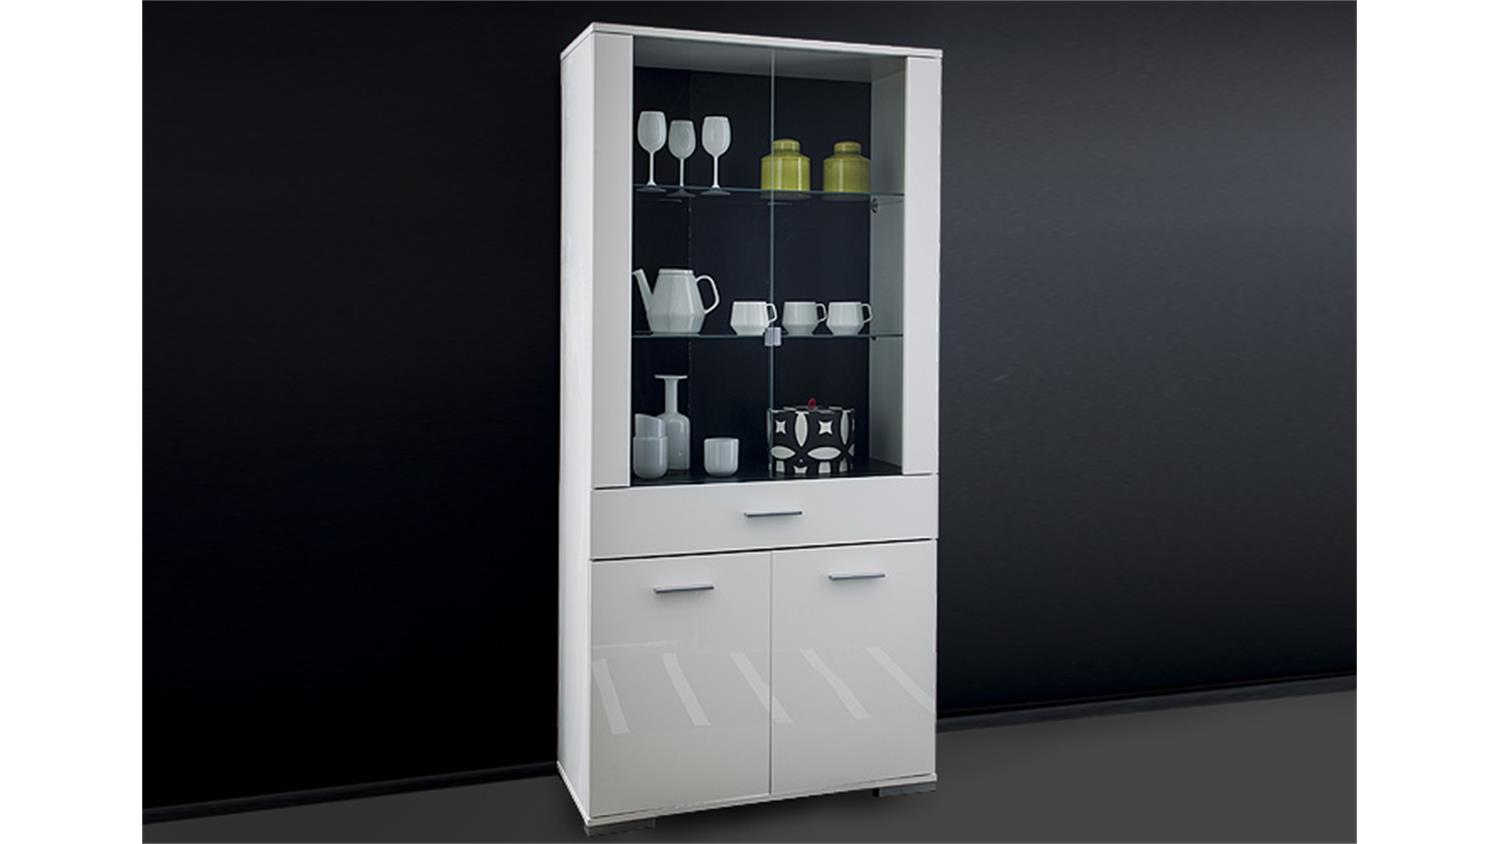 vitrine icy wohnzimmerschrank schrank glasvitrine wei glanz. Black Bedroom Furniture Sets. Home Design Ideas